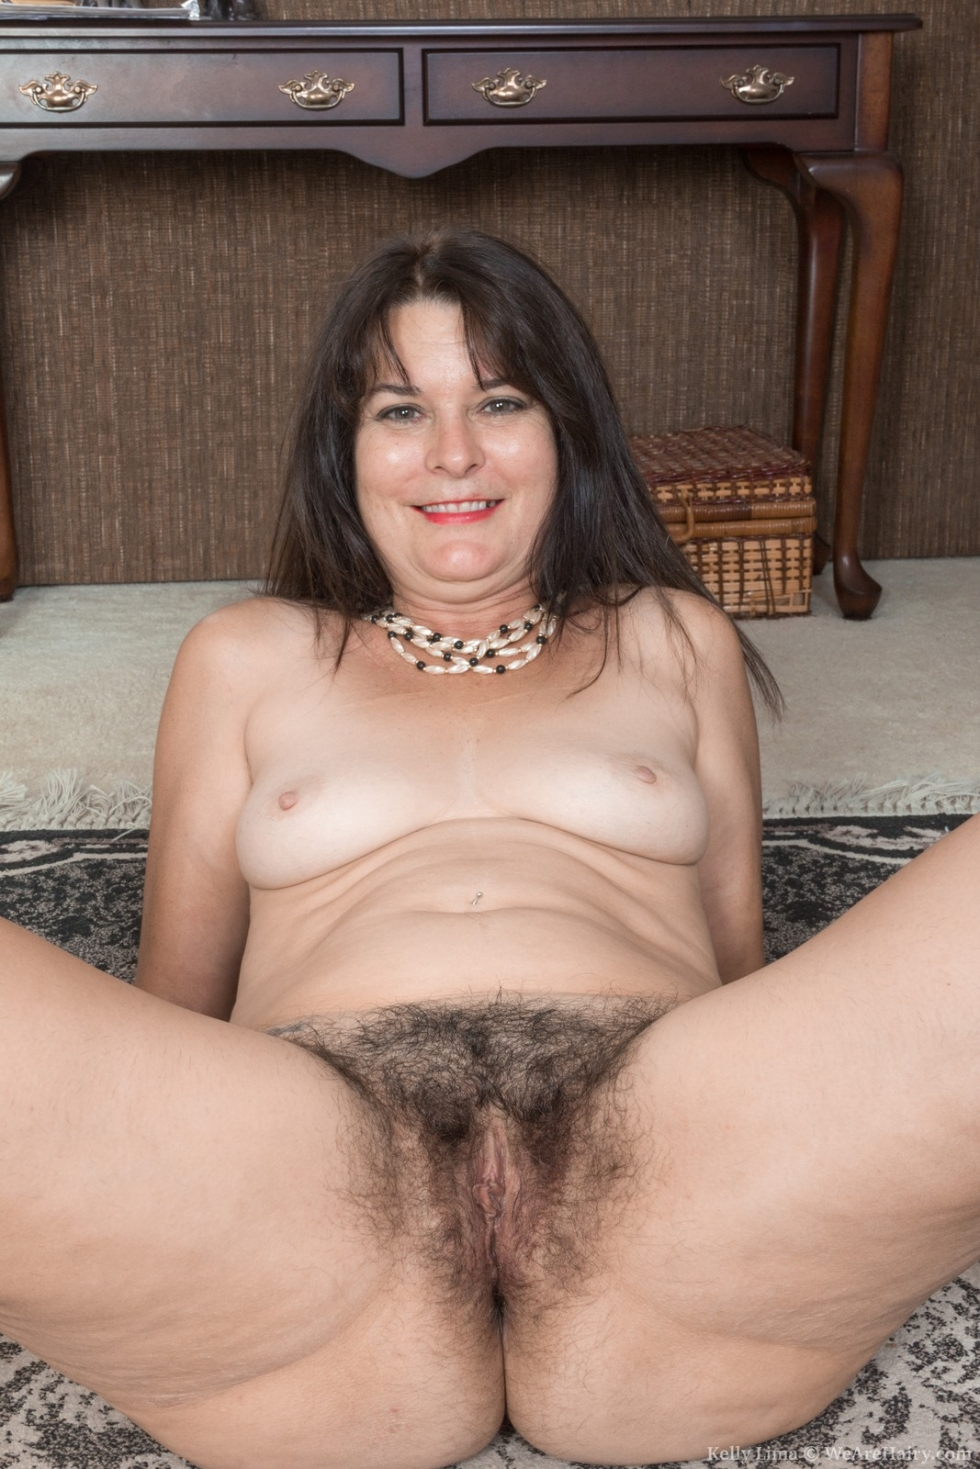 Lisa carry strips and shows off her natural body 10